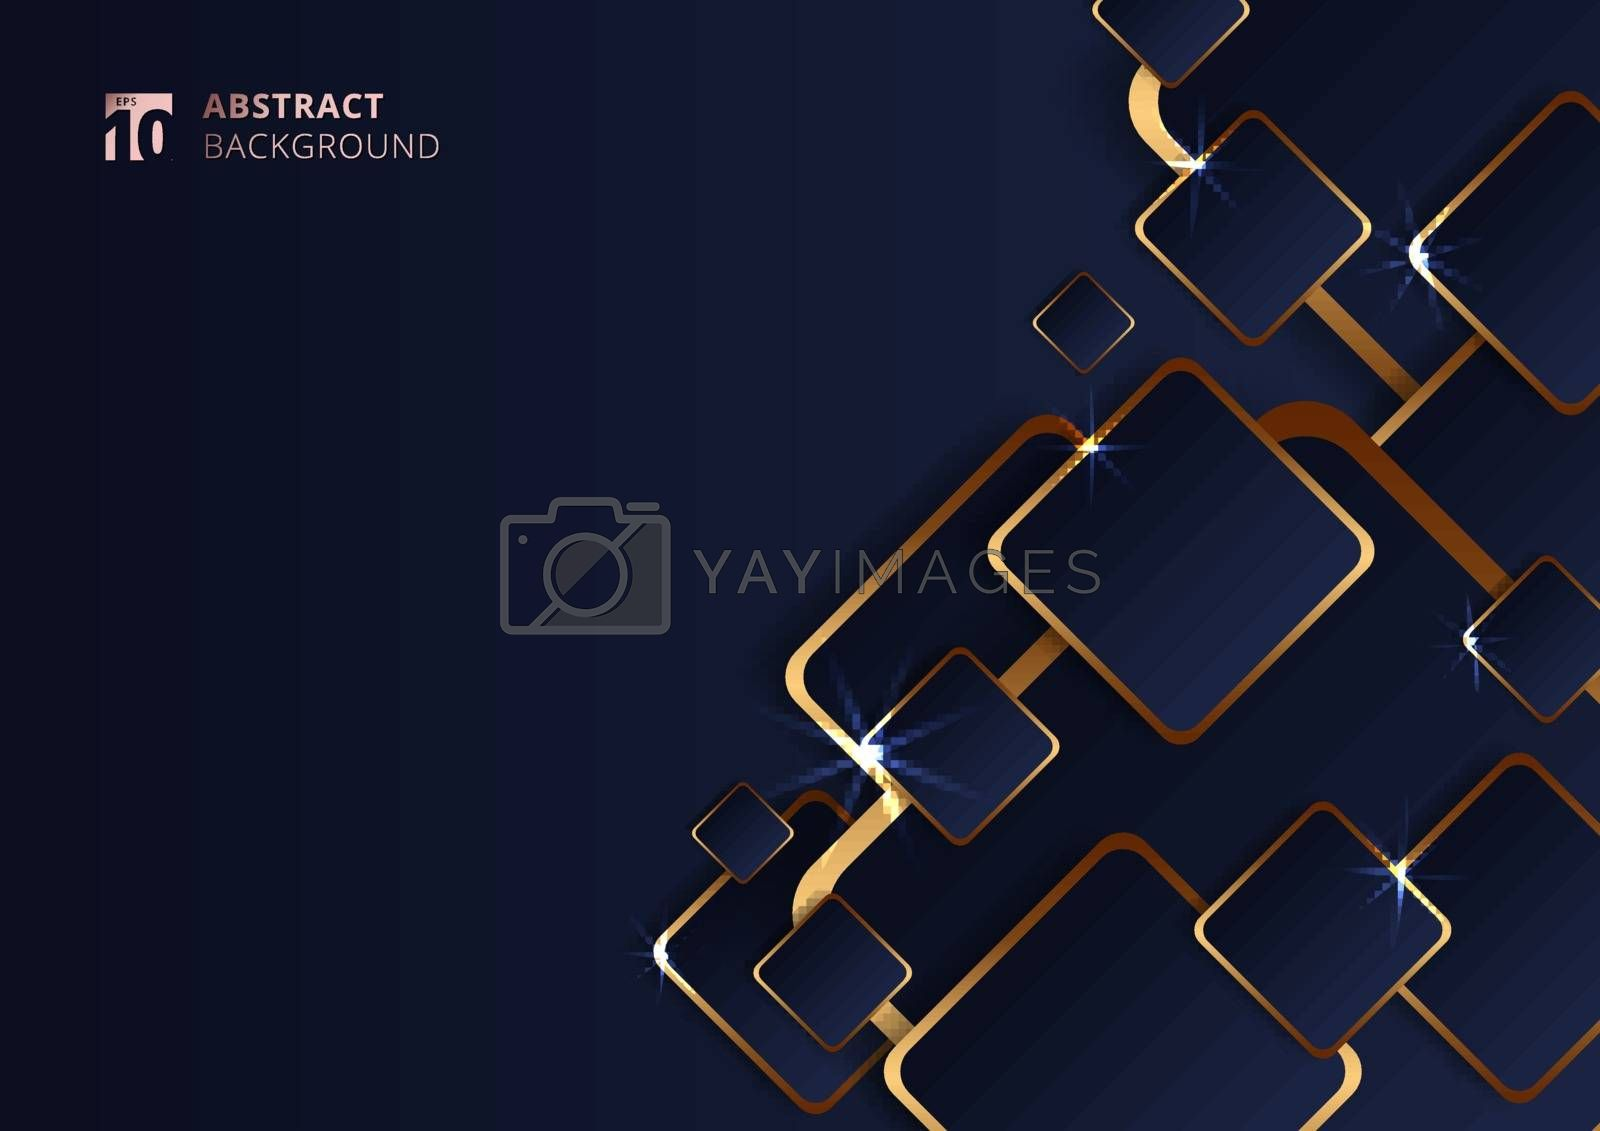 Abstract futuristic geometric golden square pattern on dark blue background with lighting. Vector illustration